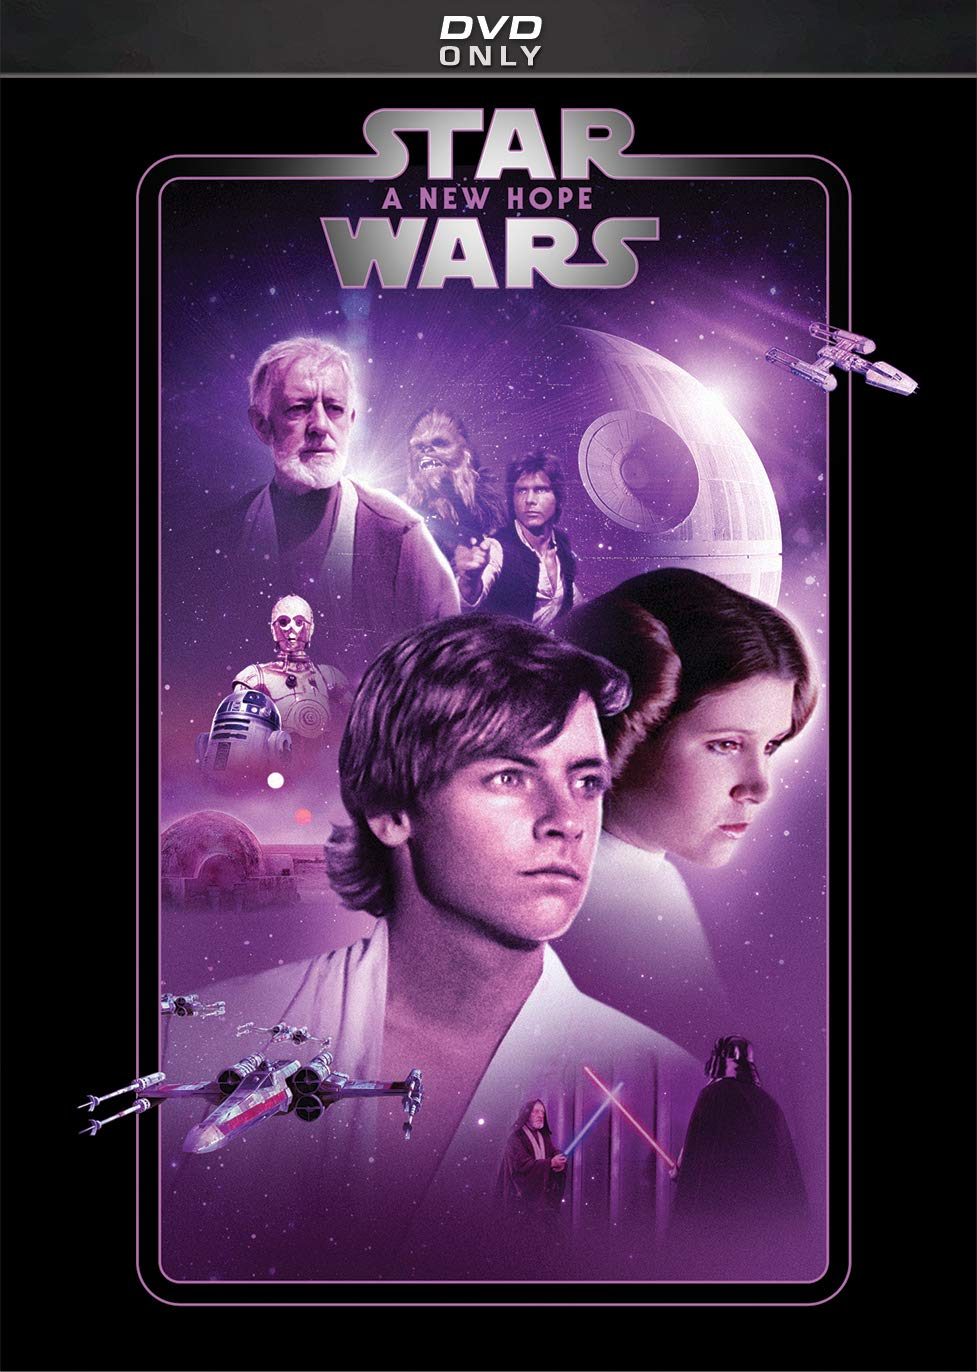 Amazon Com Star Wars A New Hope Mark Hamill Harrison Ford Carrie Fisher Peter Cushing Alec Guinness Anthony Daniels Kenny Baker Peter Mayhew David Prowse James Earl Jones Phil Brown Shelagh Fraser Jack